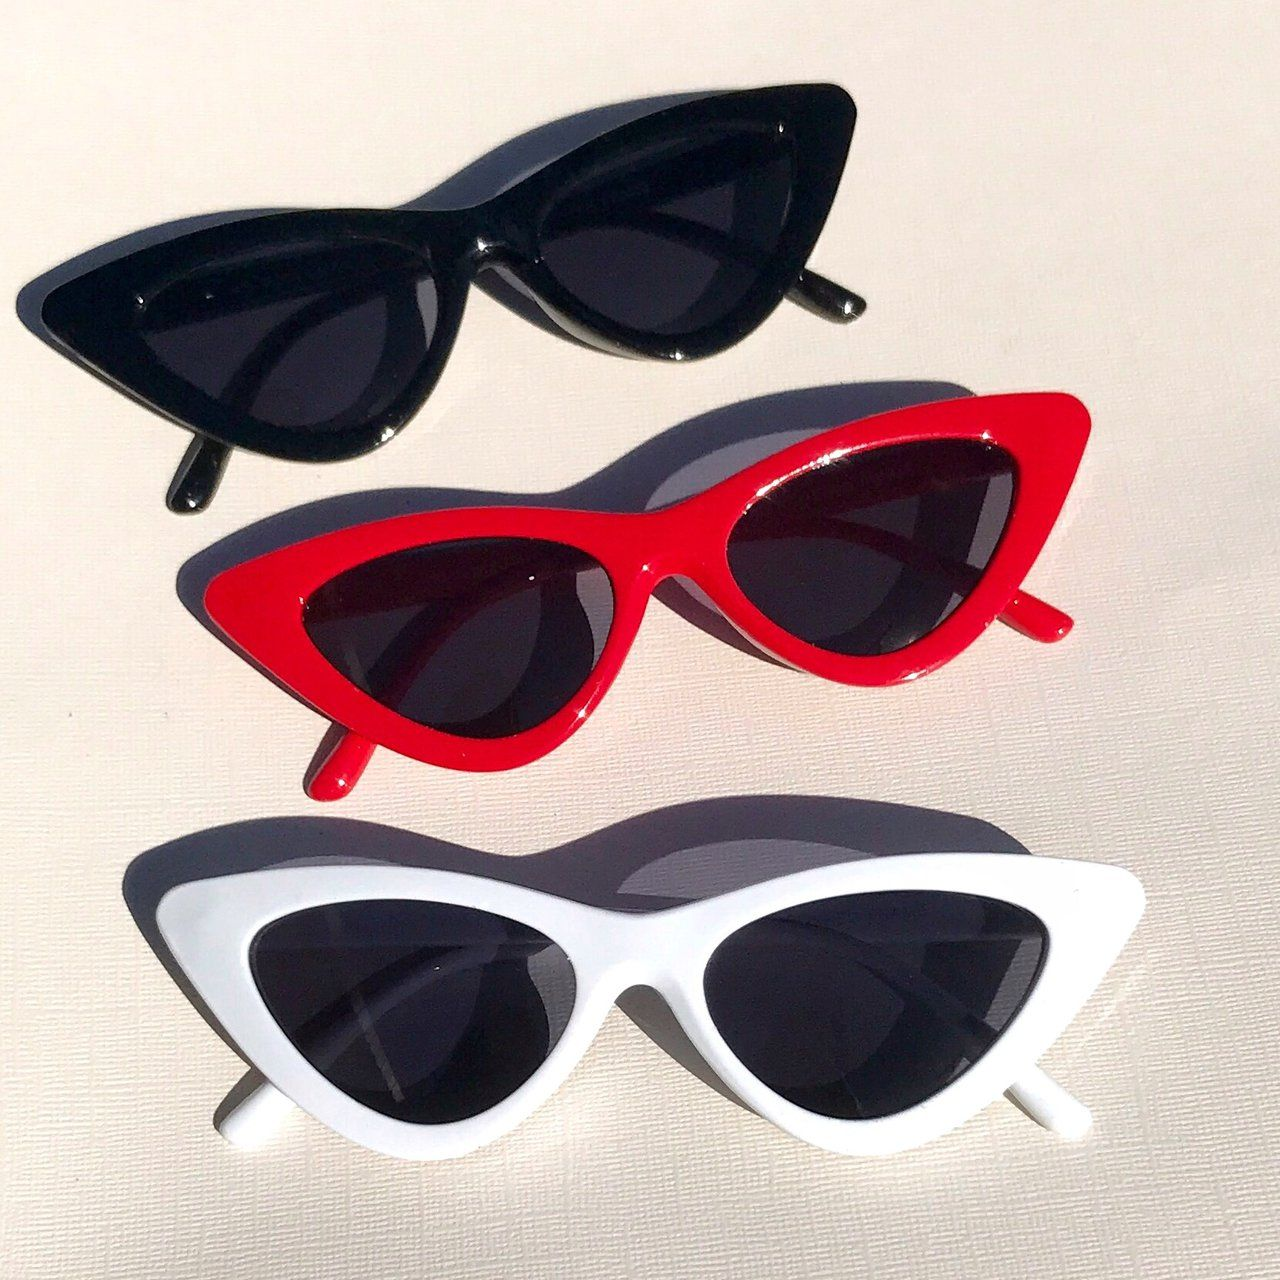 retro cat eye sunnies   glasses   Pinterest 5001ba9f16